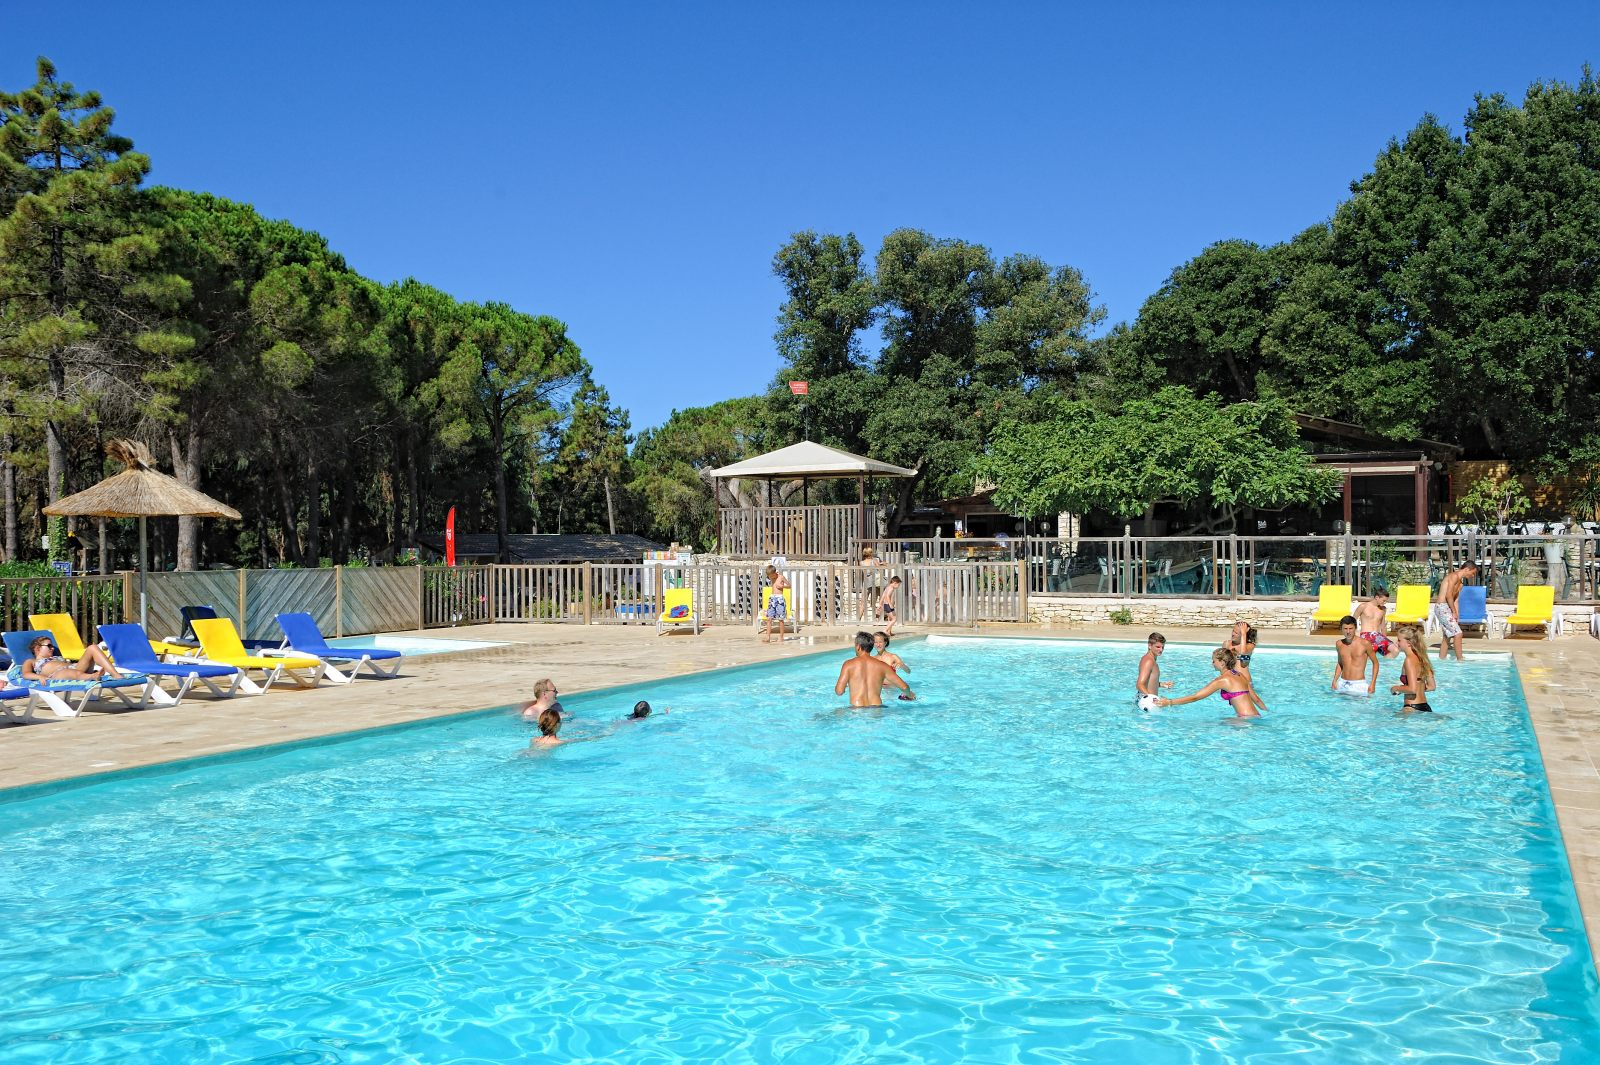 Camping piscine corse du sud tous nos campings piscine for Camping corse du sud avec piscine